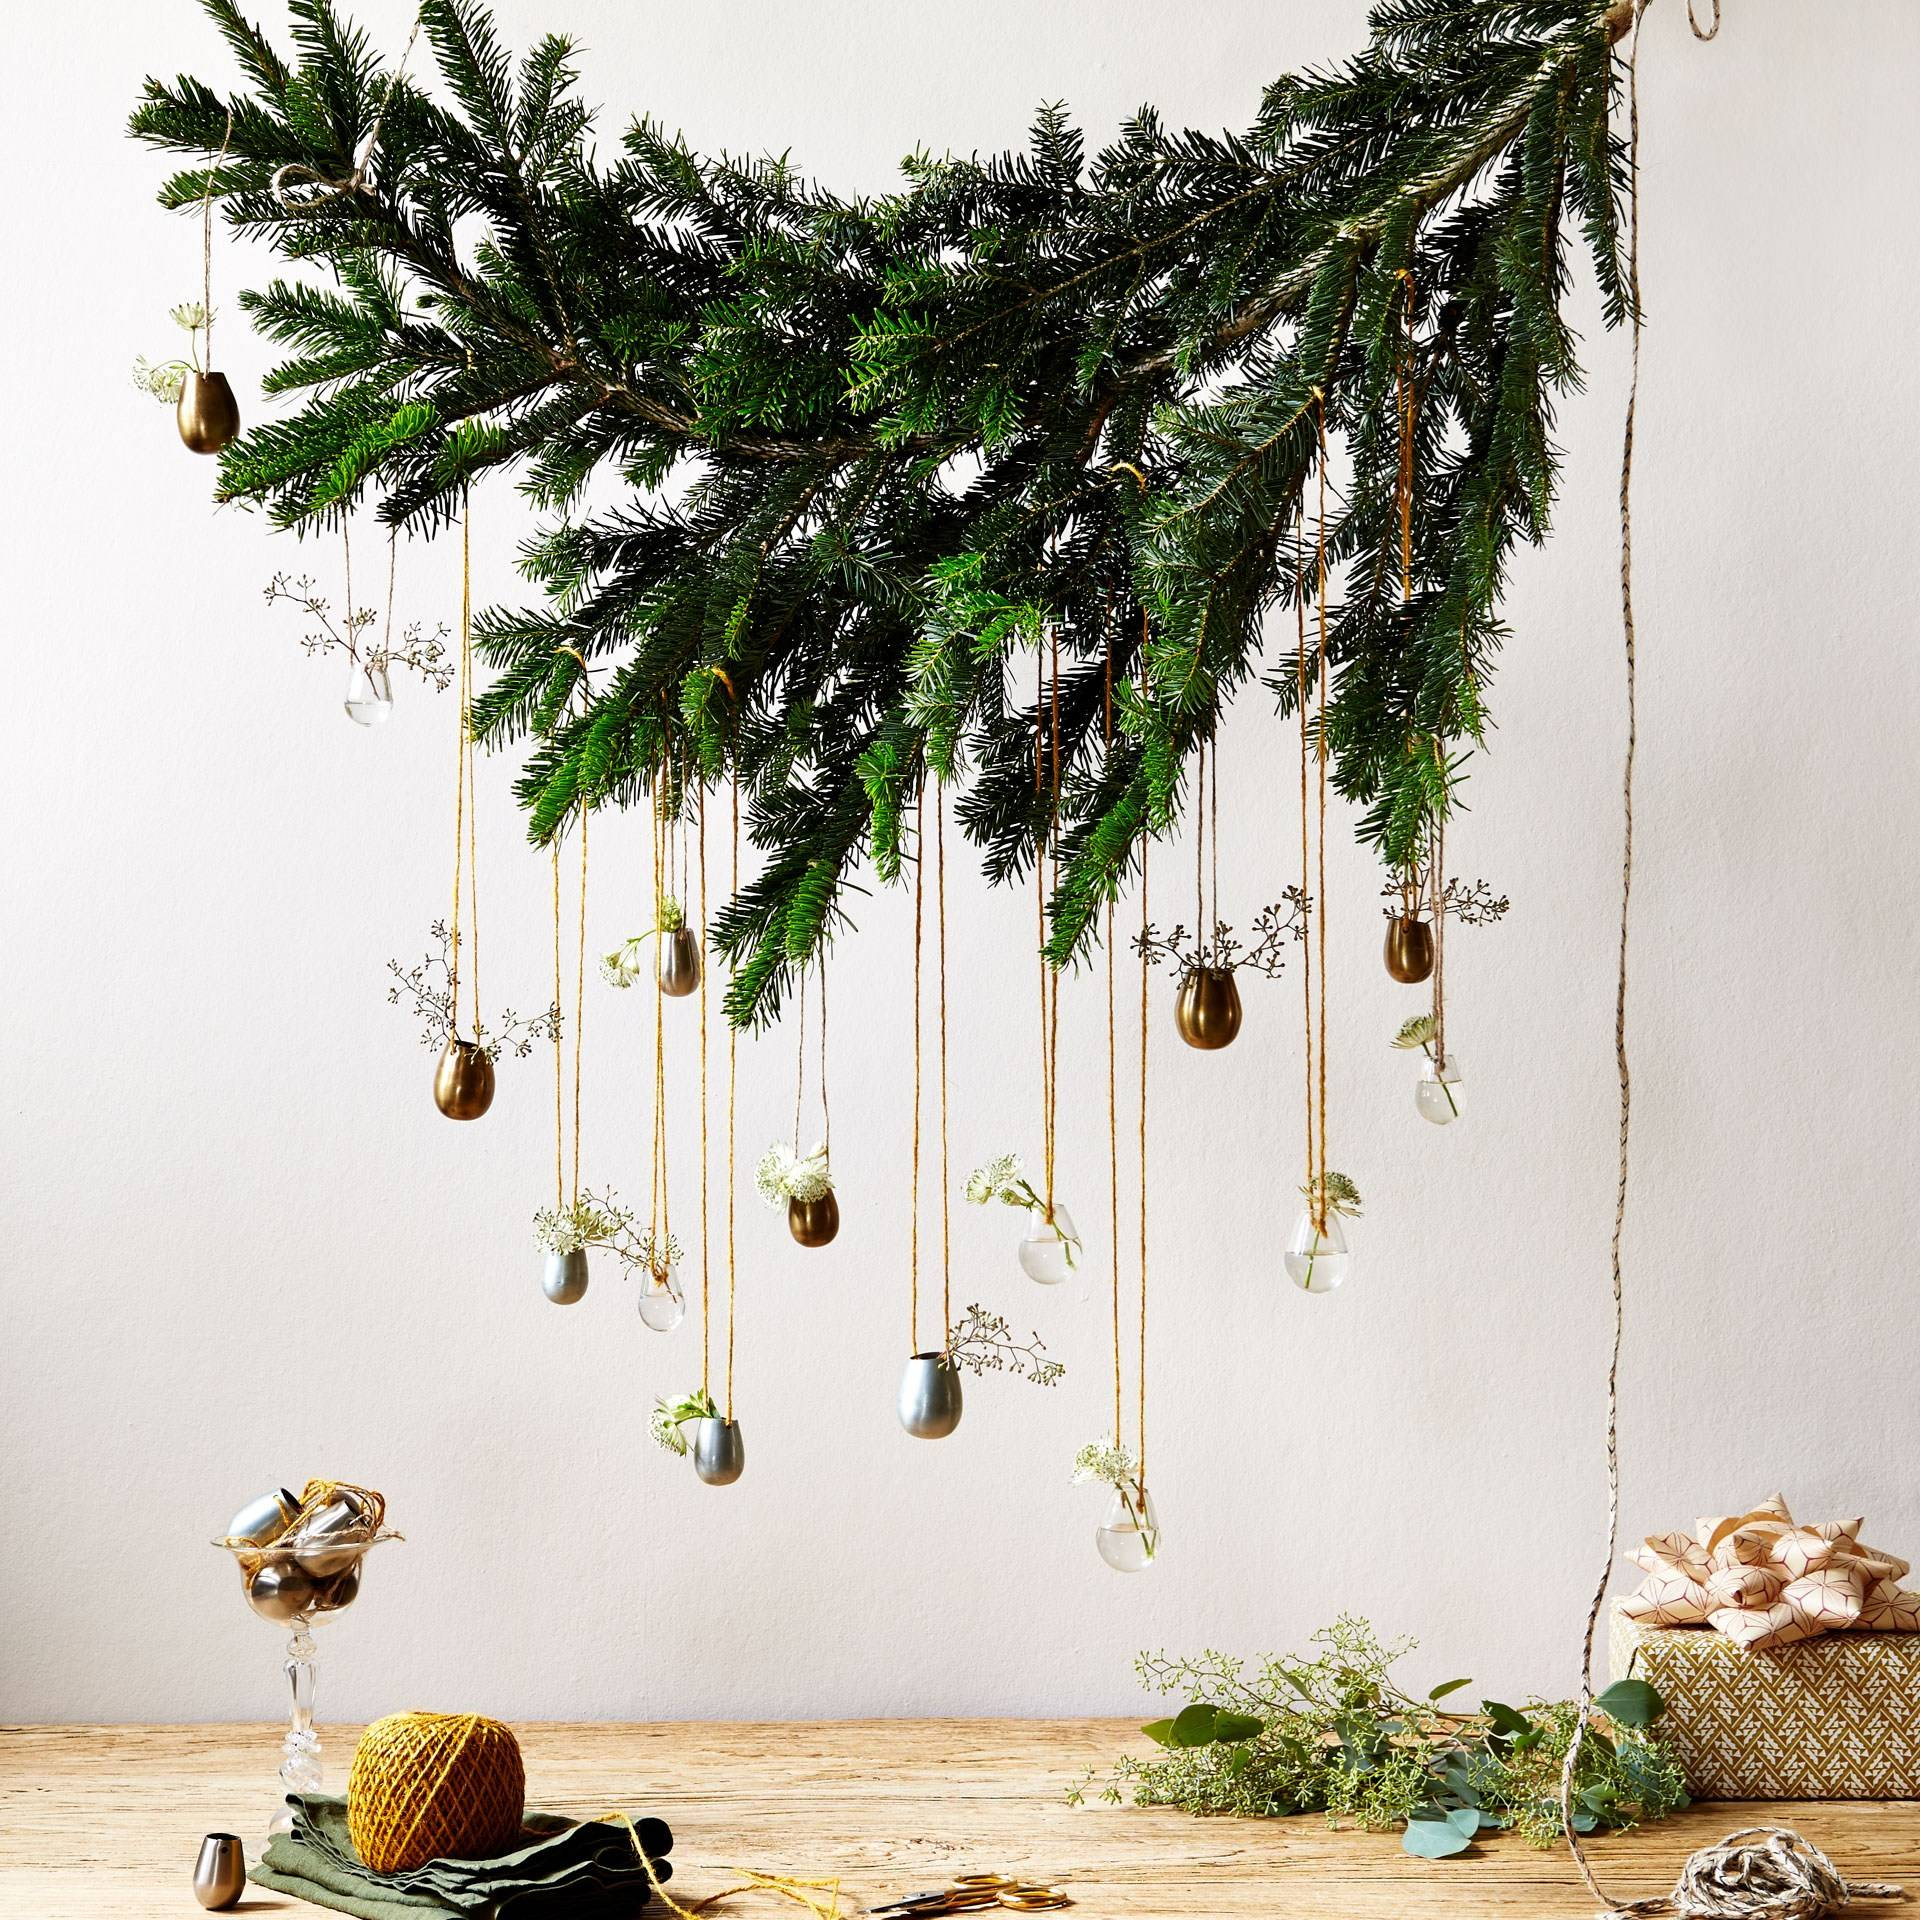 Christmas Decorating With Plants Foliage Holly Ivy Mistletoe House Garden